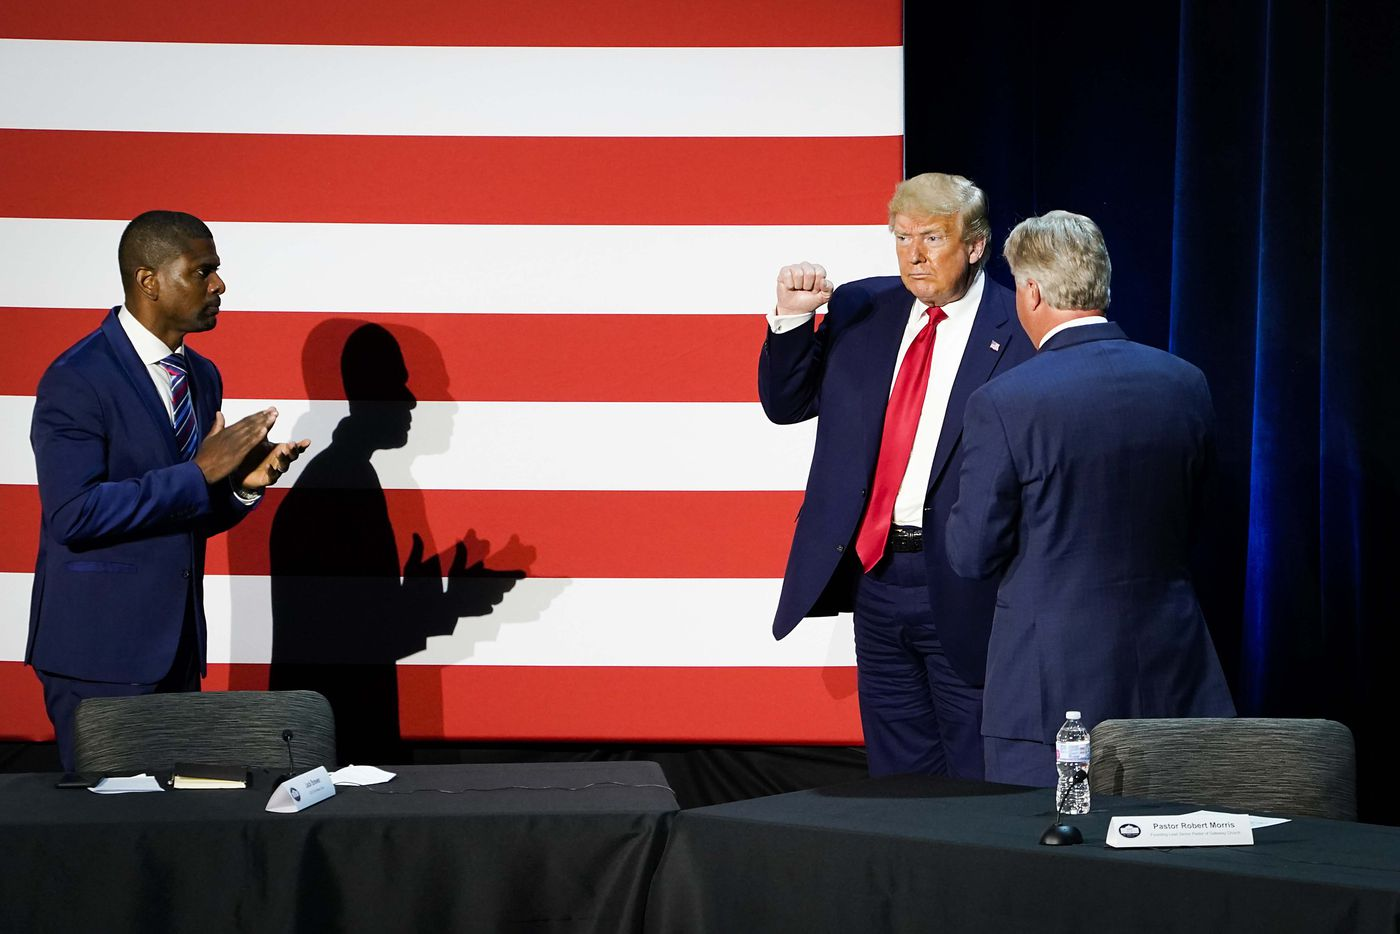 Jack Brewer (left) applauds as President Donald Trump acknowledges the crowd at the conclusion of a roundtable conversation about race relations and policing at Gateway Church Dallas Campus on Thursday, June 11, 2020, in Dallas. (Smiley N. Pool/The Dallas Morning News)